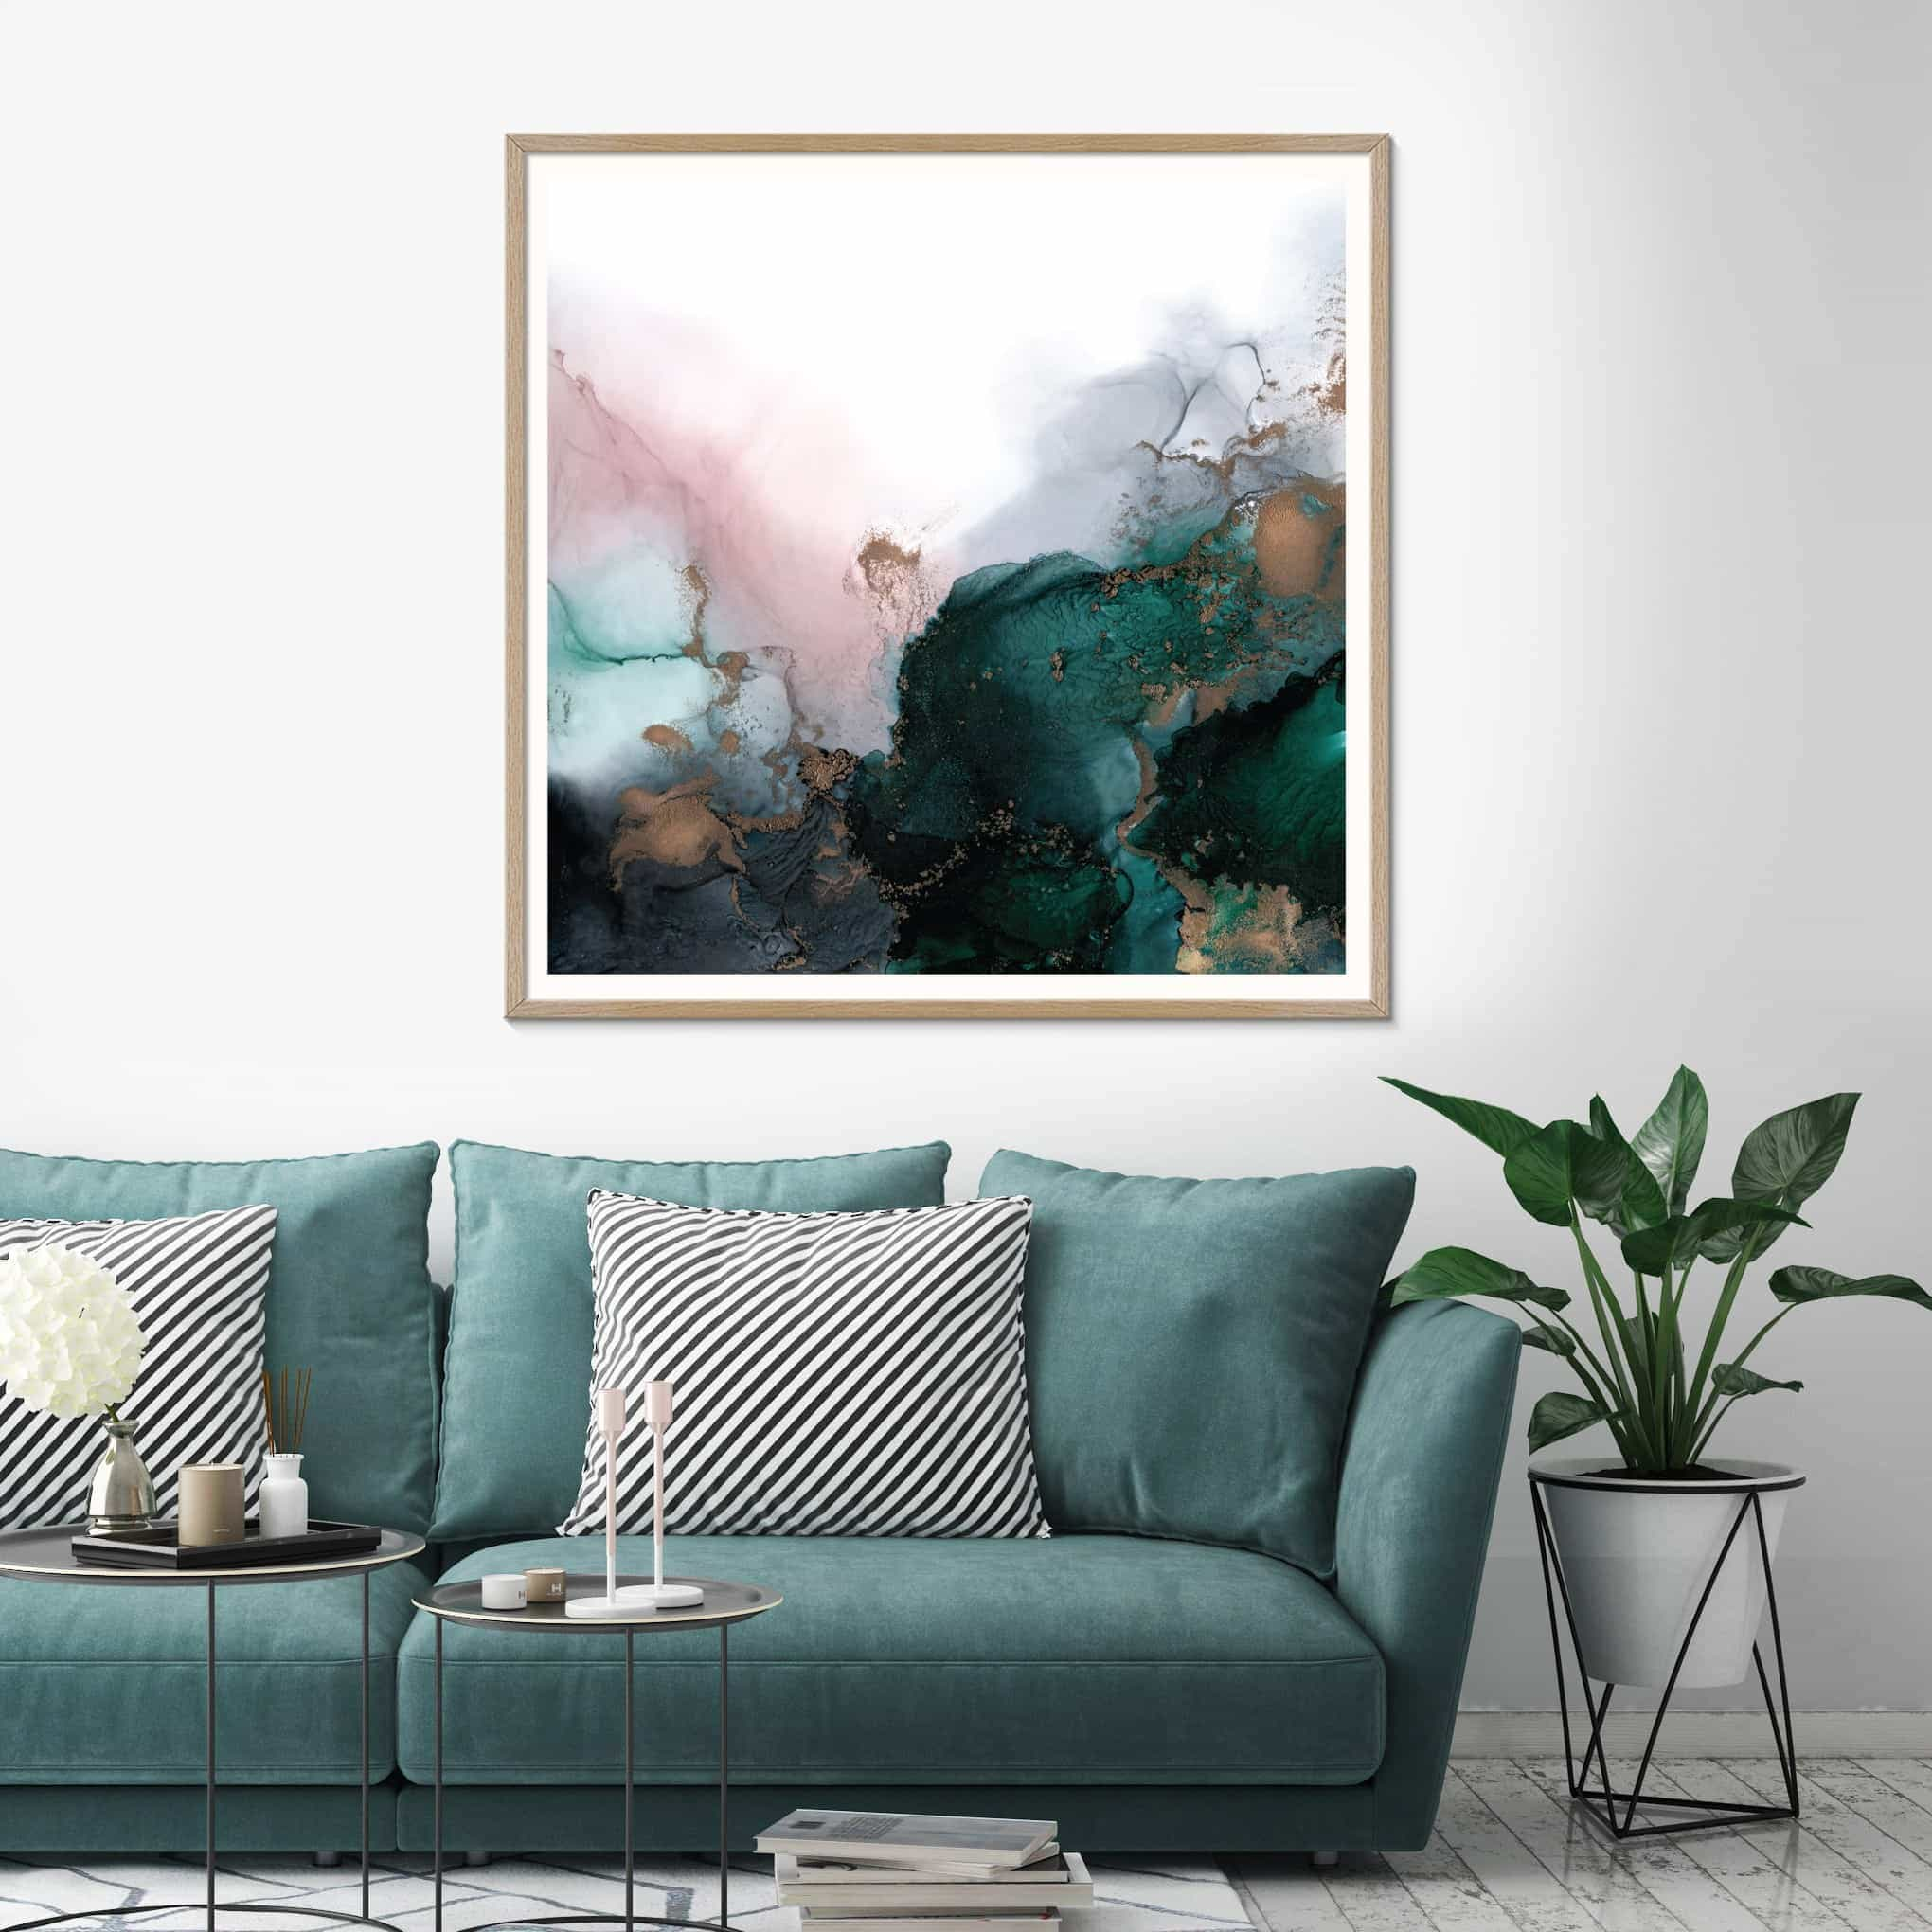 fern siebler australian abstract artists work in living room with teal sofa